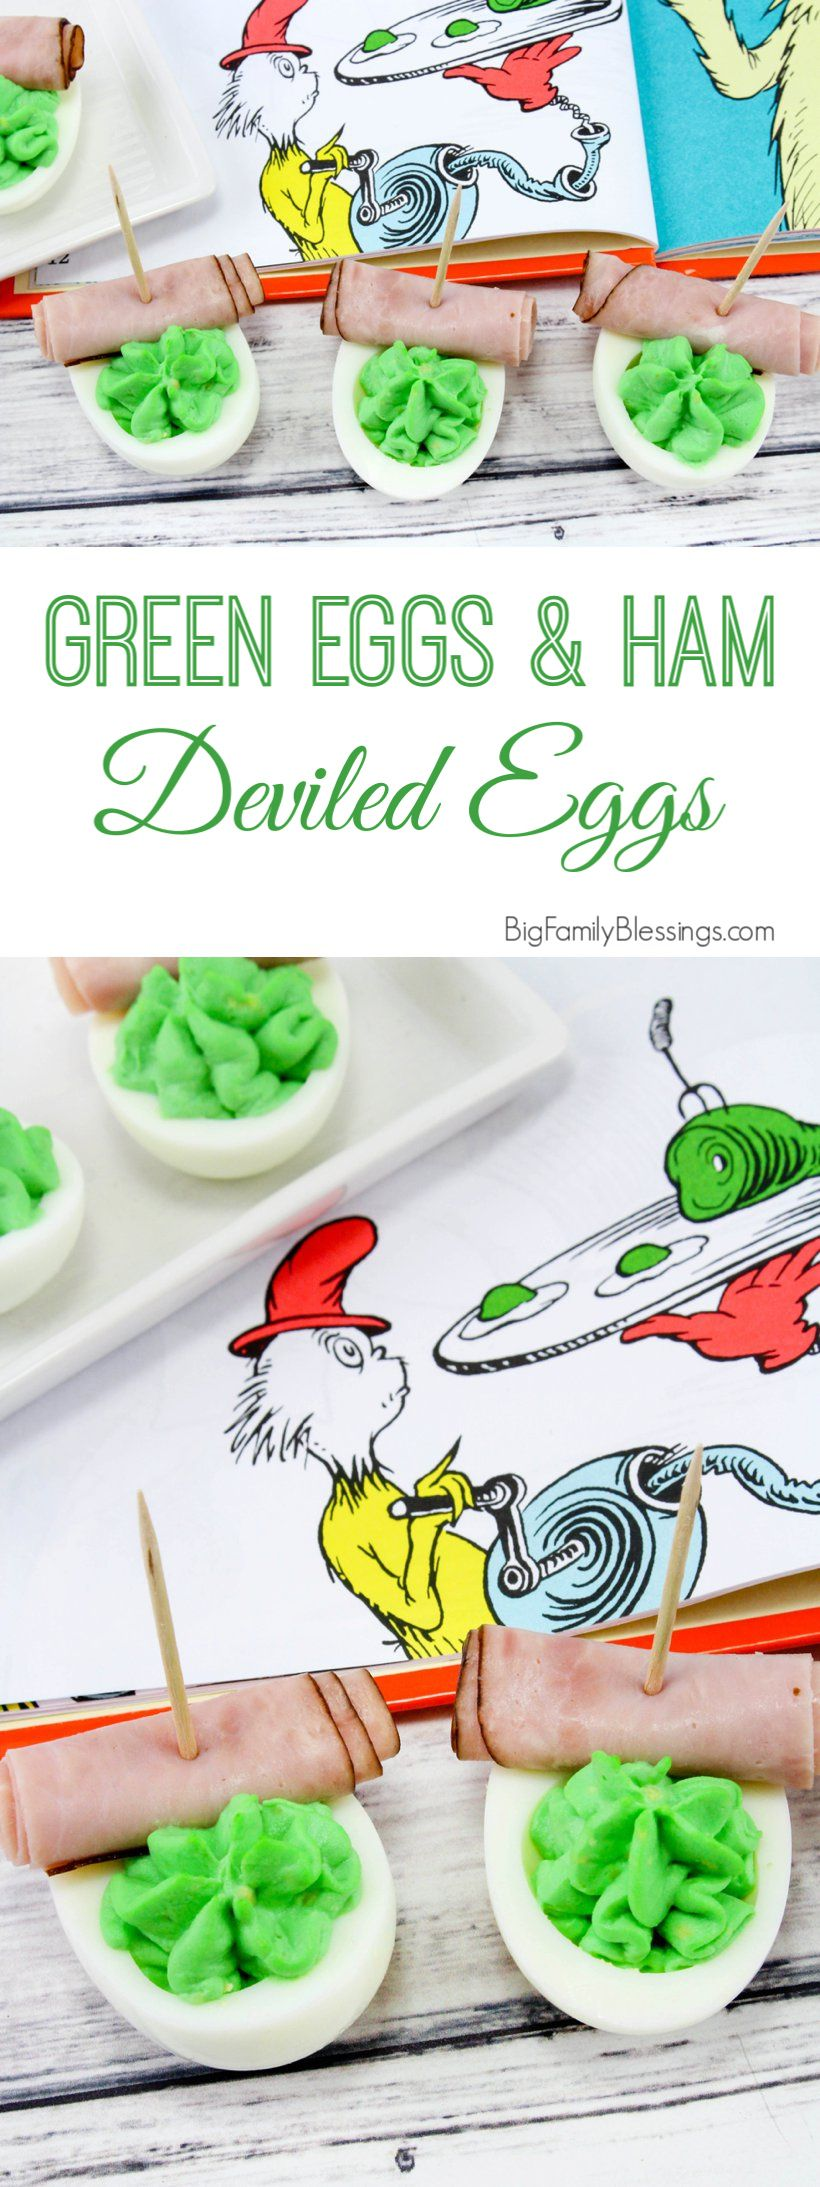 Dr. Seuss Green Eggs and Ham Deviled Eggs #greeneggsandhamrecipe